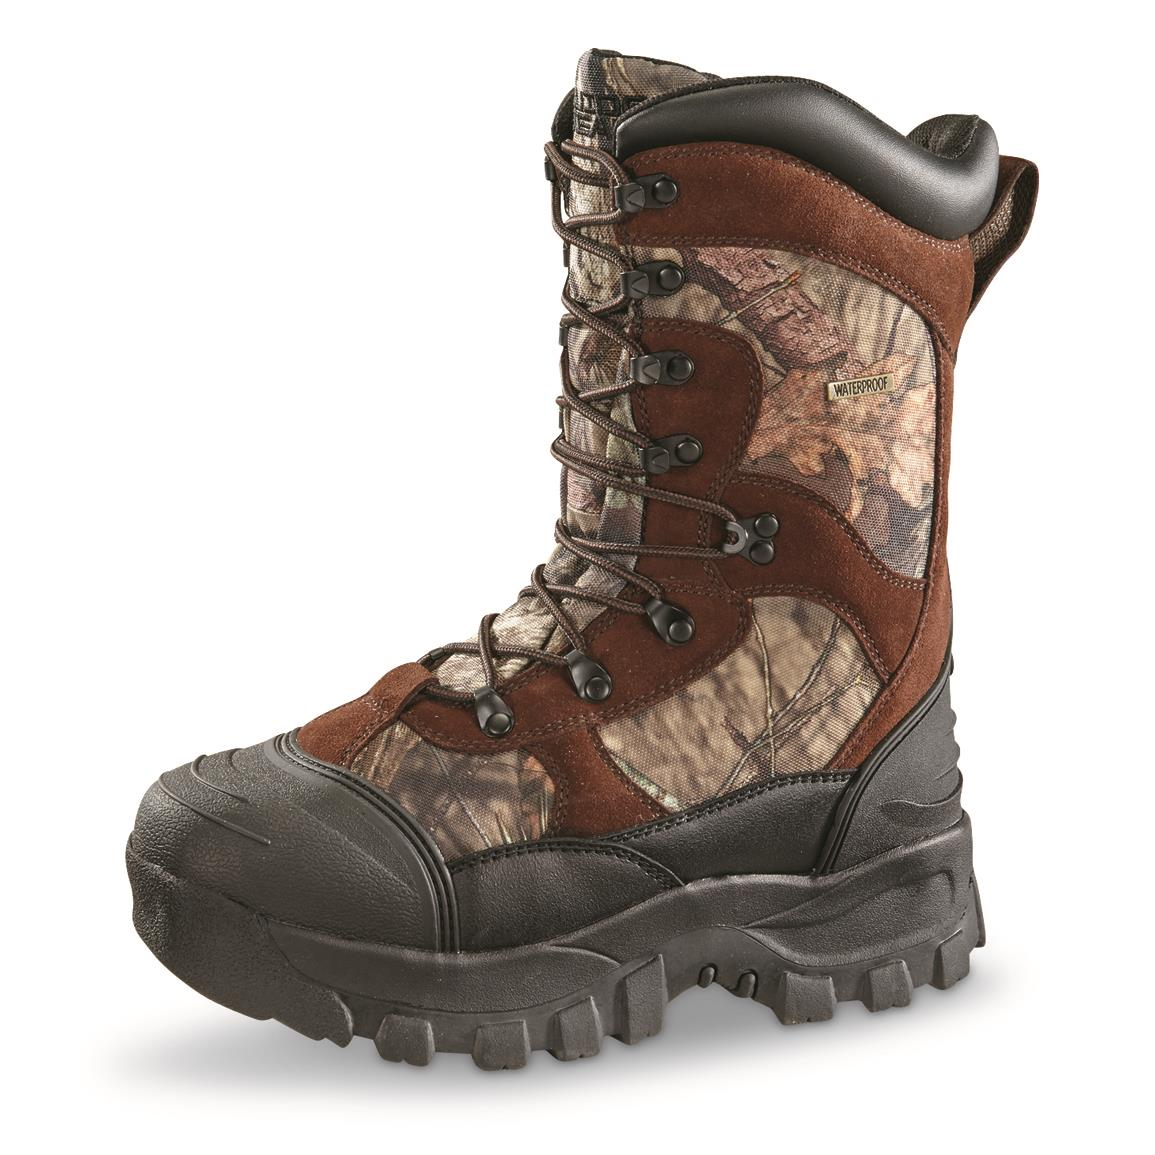 Guide Gear Men's Monolithic Hunting Boots, Insulated, Waterproof, 2,400 grams, Realtree Xtra Brown